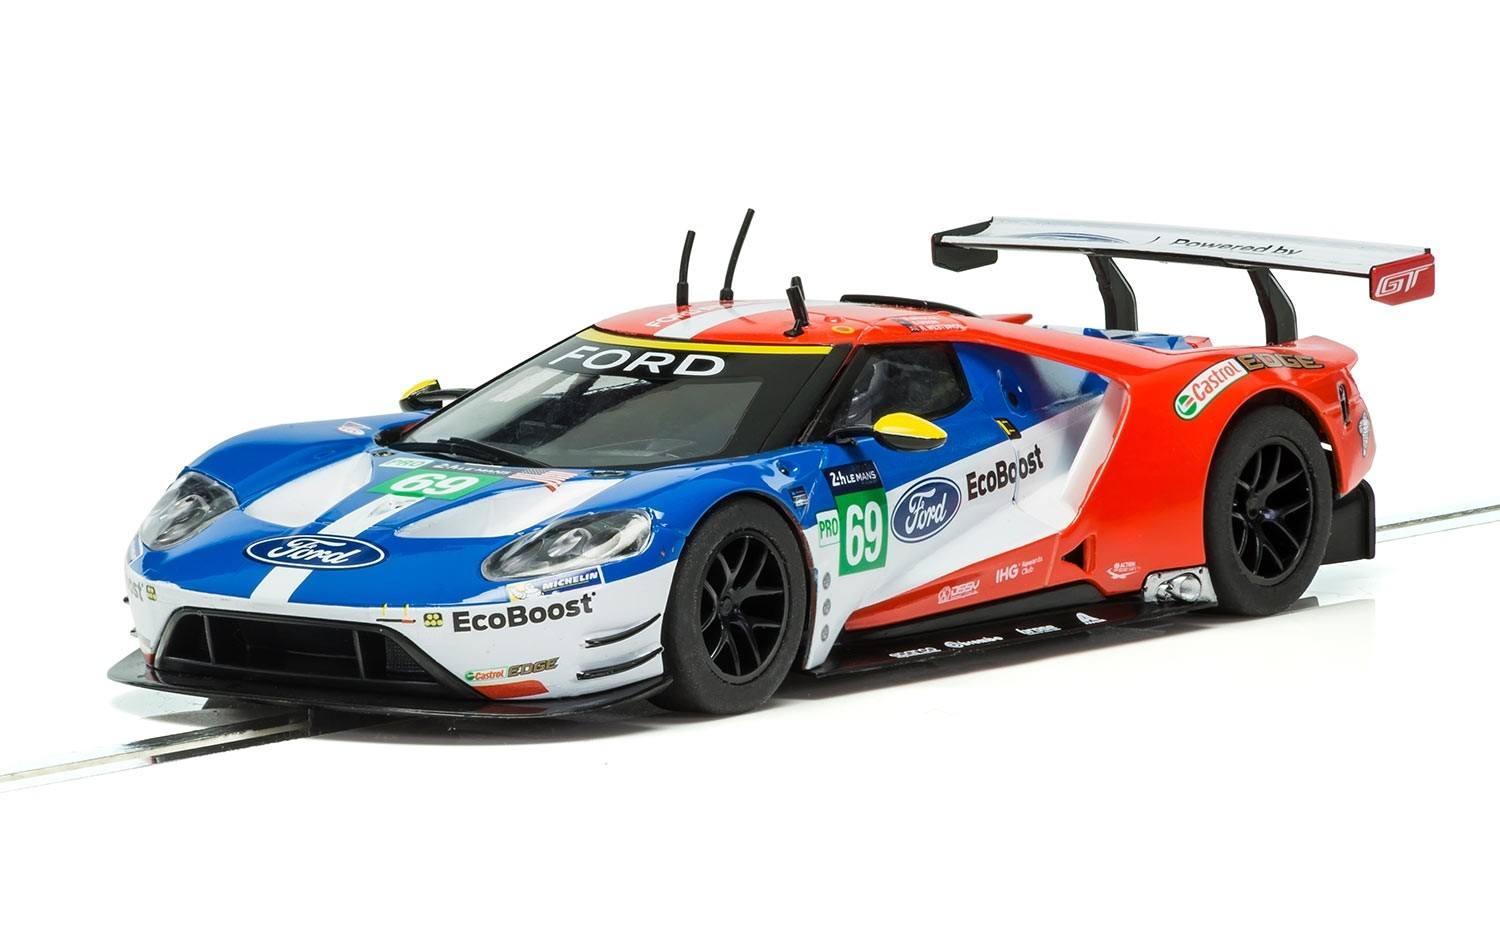 Ford GT - GTE Le Mans 2016 #69 1/32 Slot Car